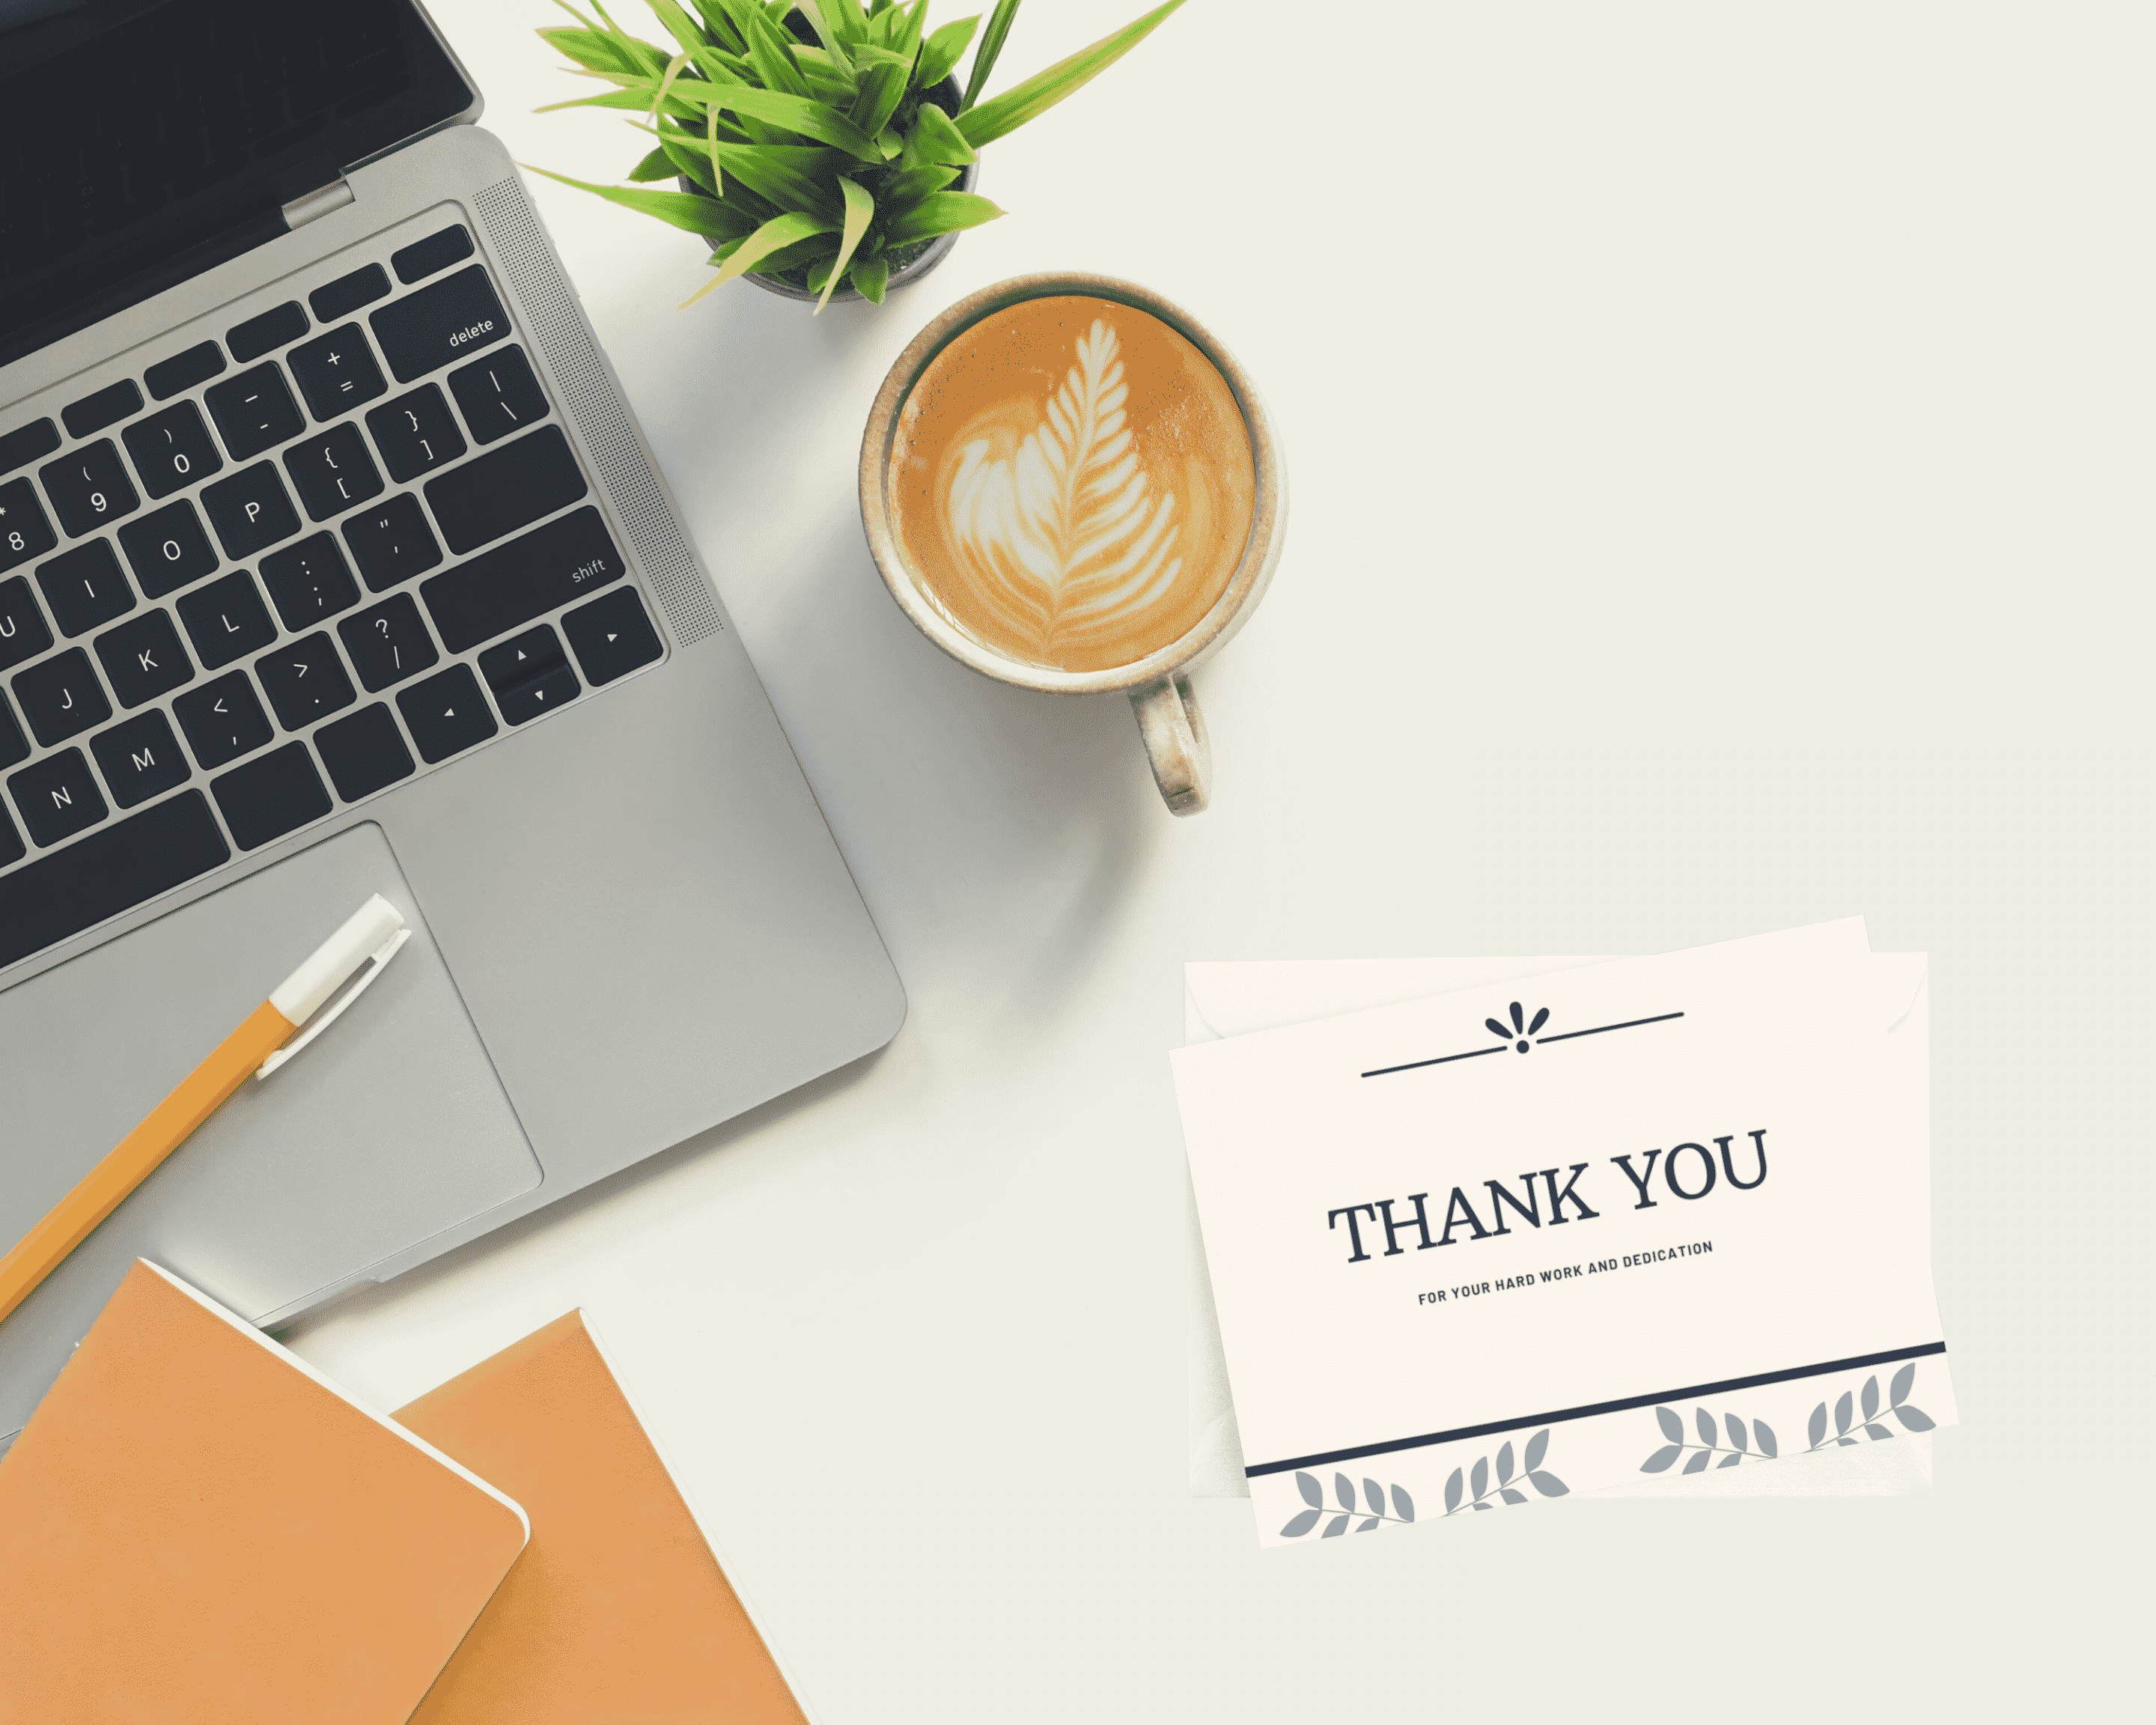 A thank you card sits on a desk next to a laptop and mug of coffee